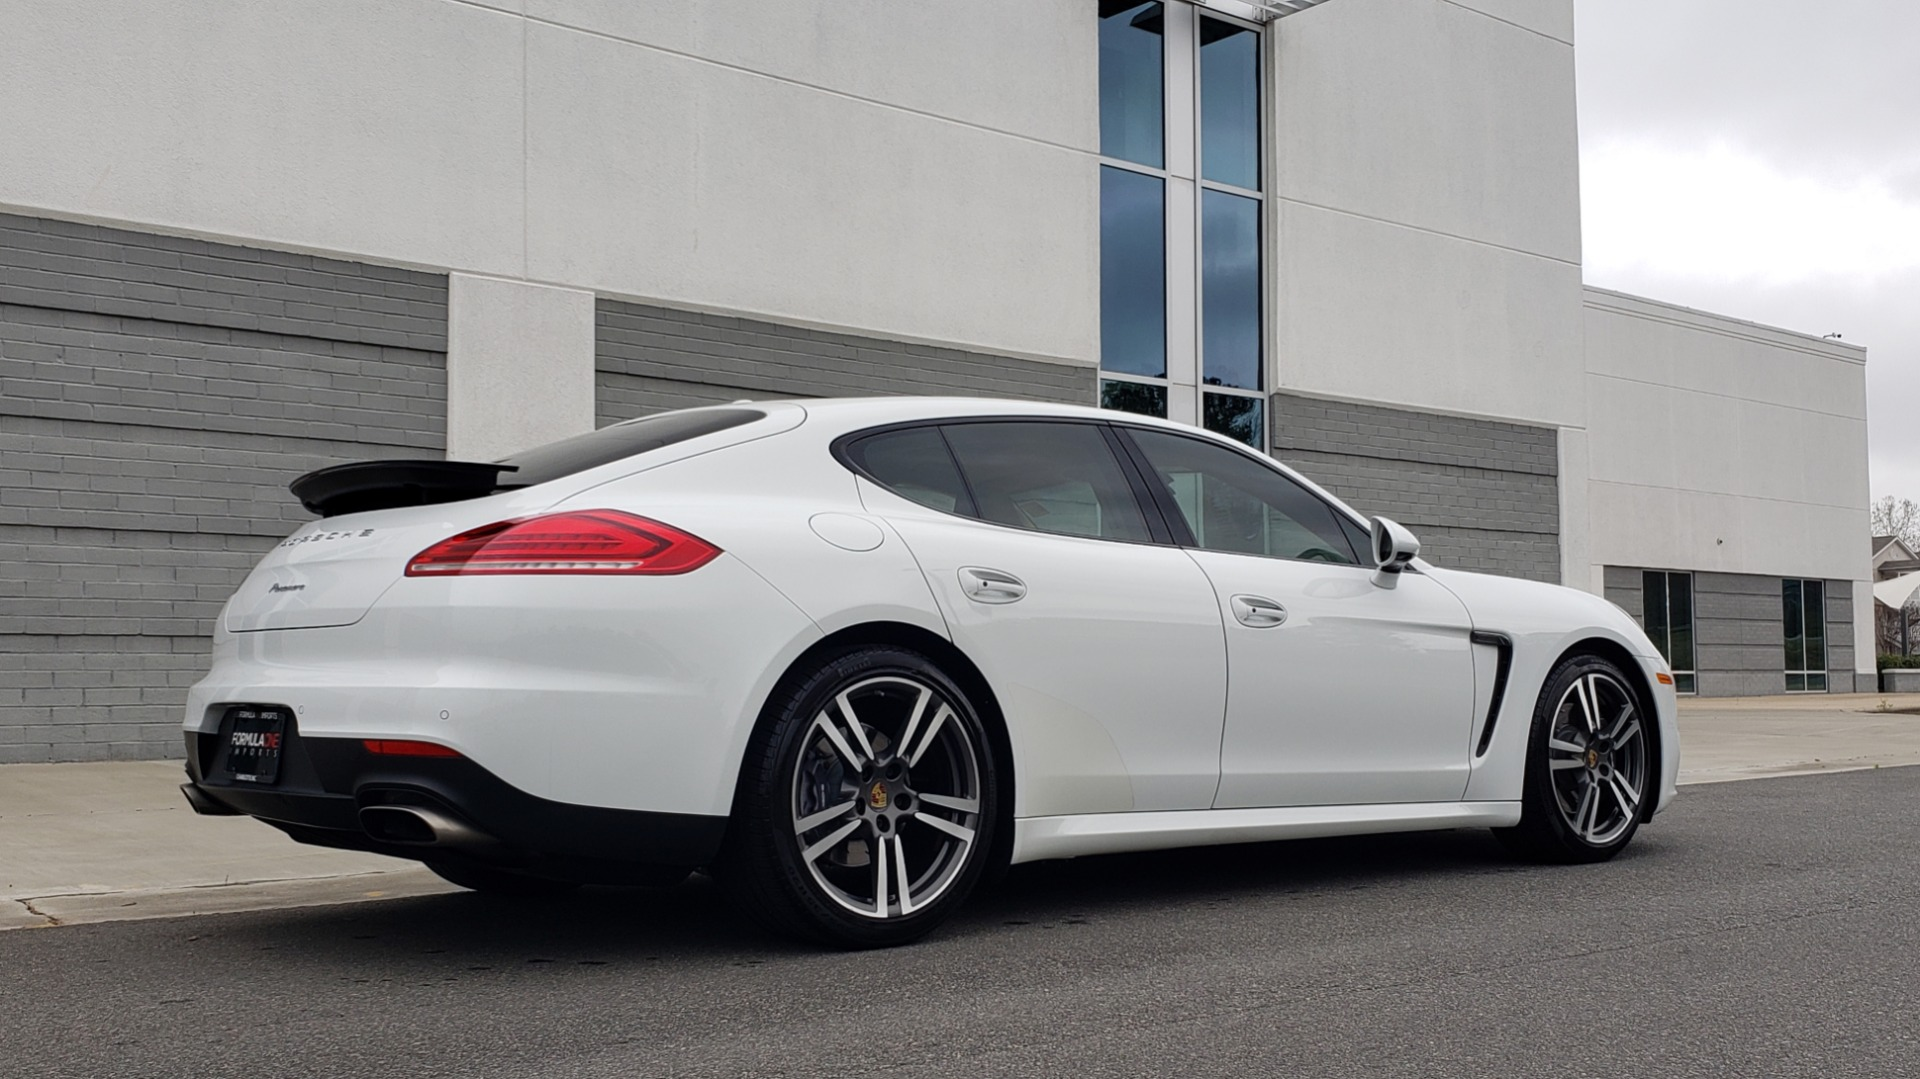 Used 2016 Porsche PANAMERA EDITION / 3.6L V6 / PDK TANS / PREMIUM PKG / LDW / PARK ASSIST for sale Sold at Formula Imports in Charlotte NC 28227 3